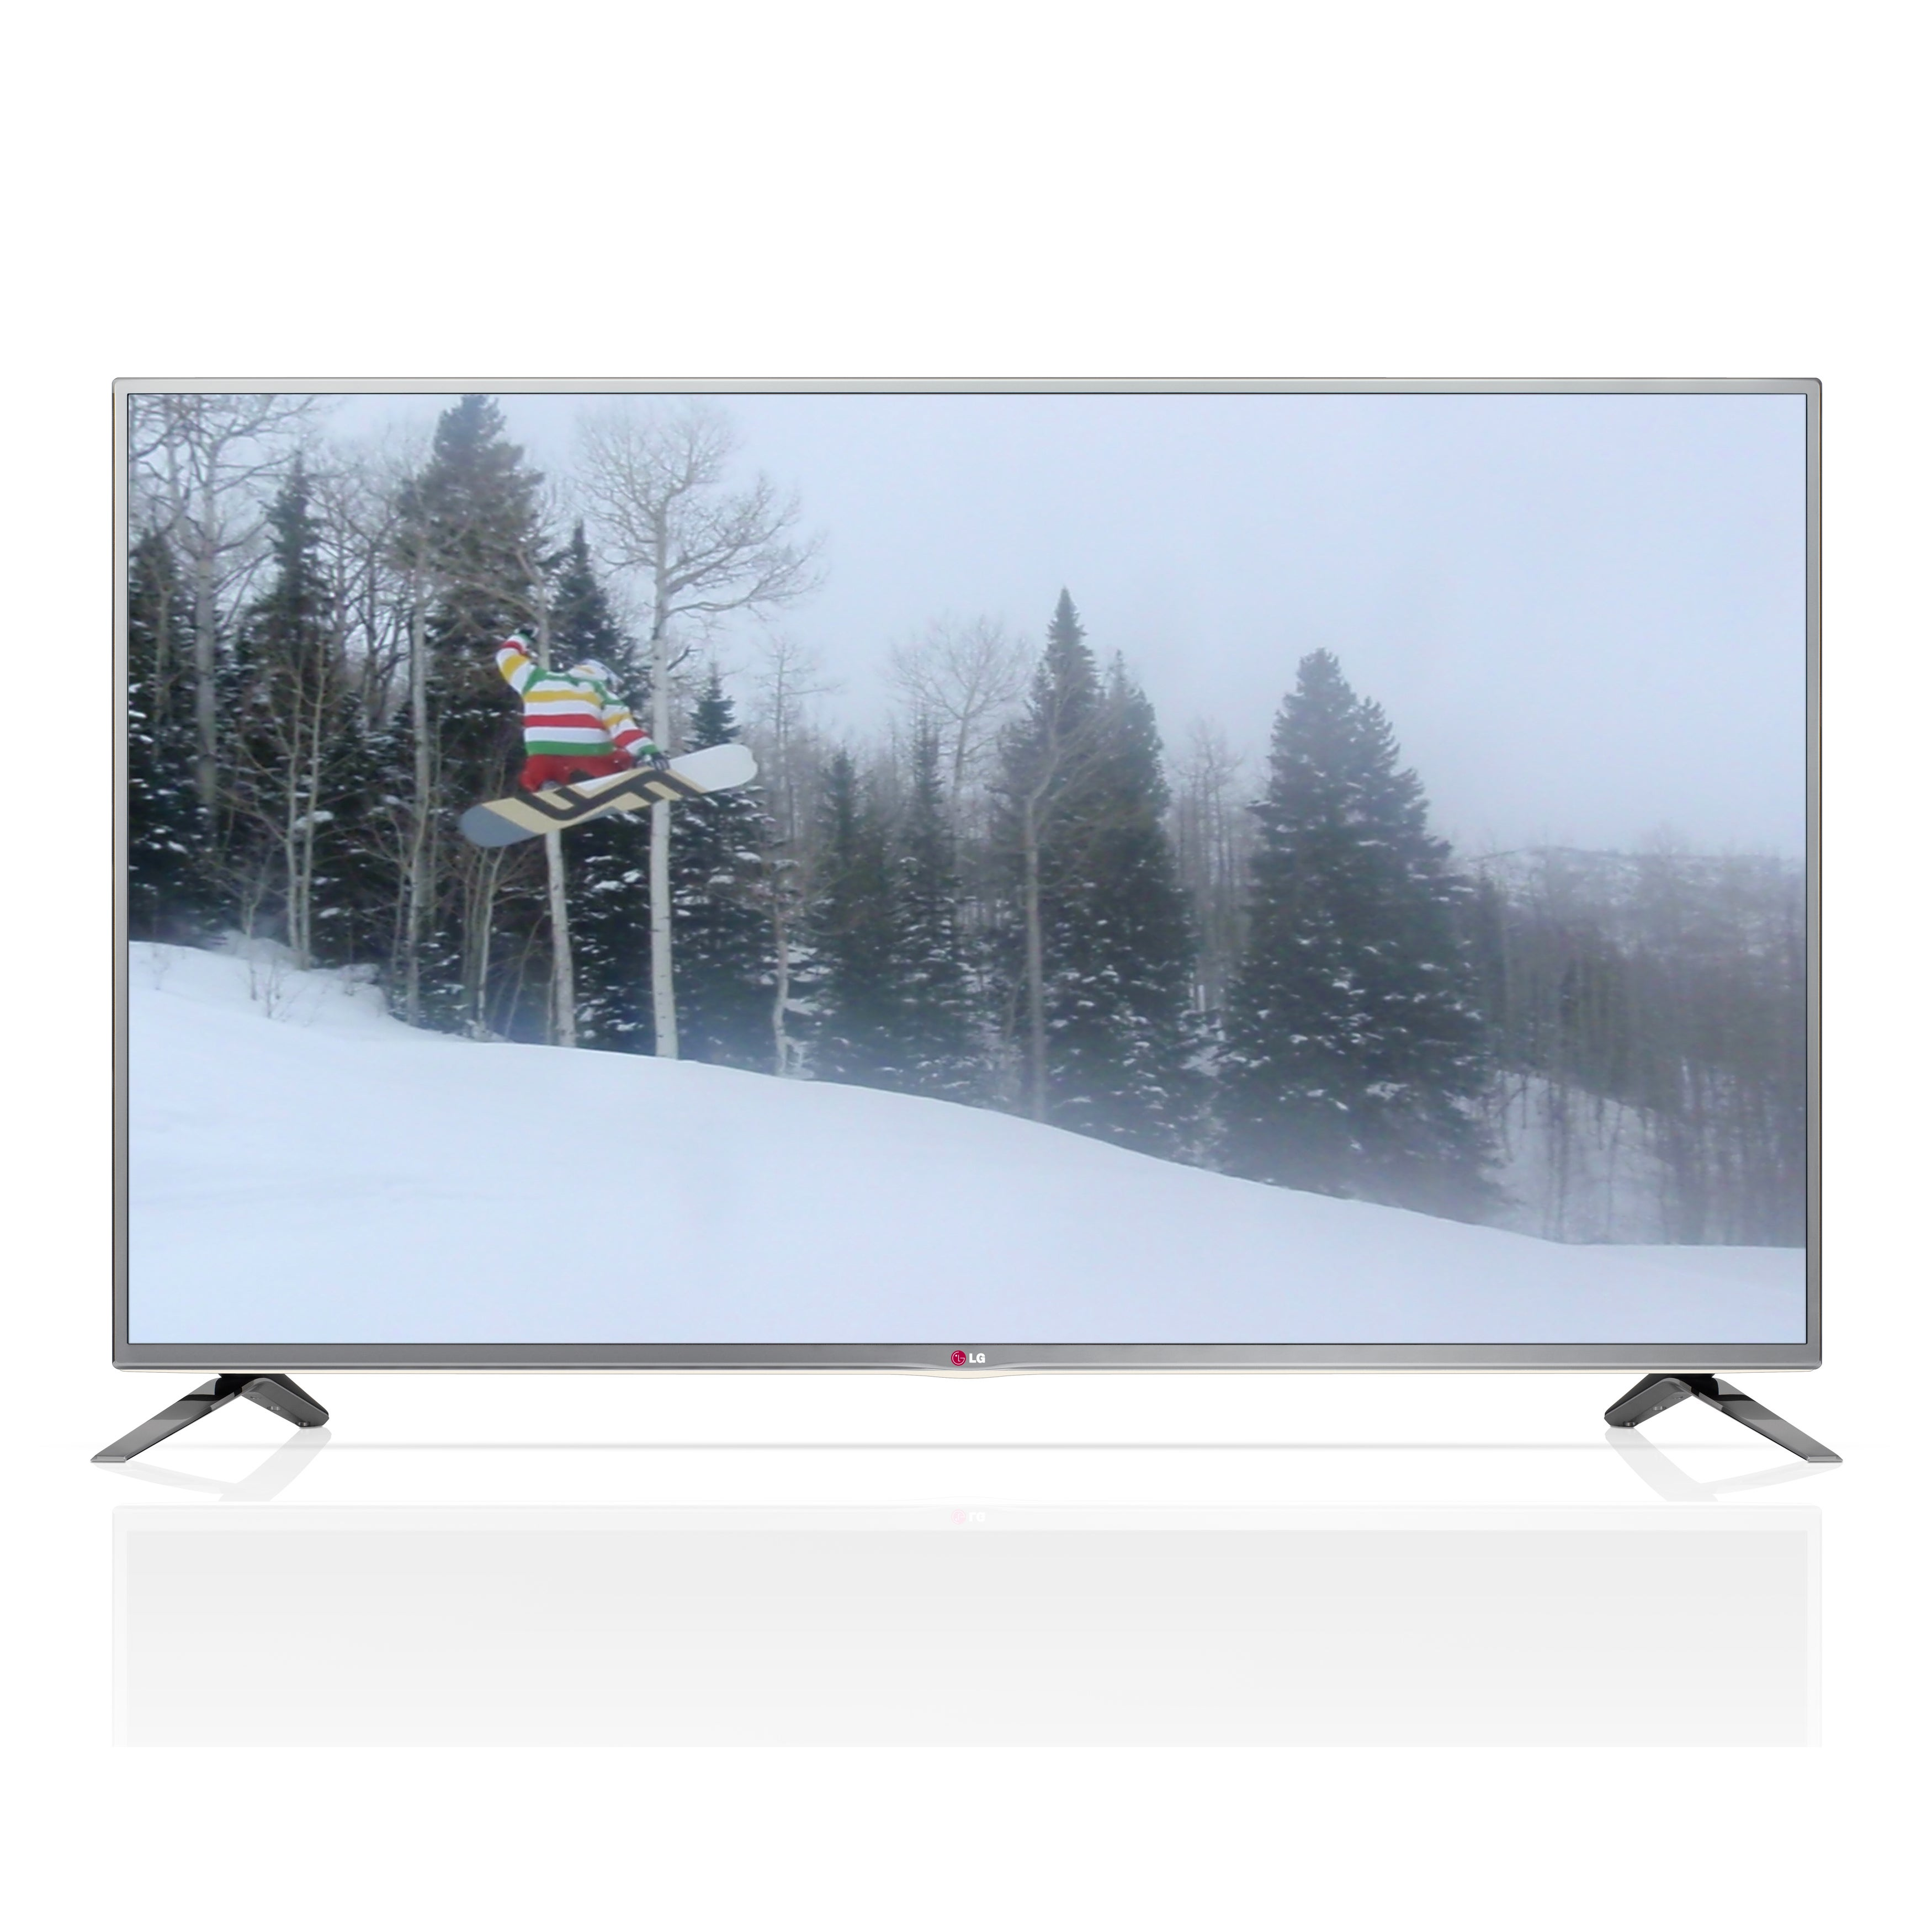 LG 55LB6300 55-inch 1080p 120Hz Smart LED HDTV with Magic Remote (Refurbished)